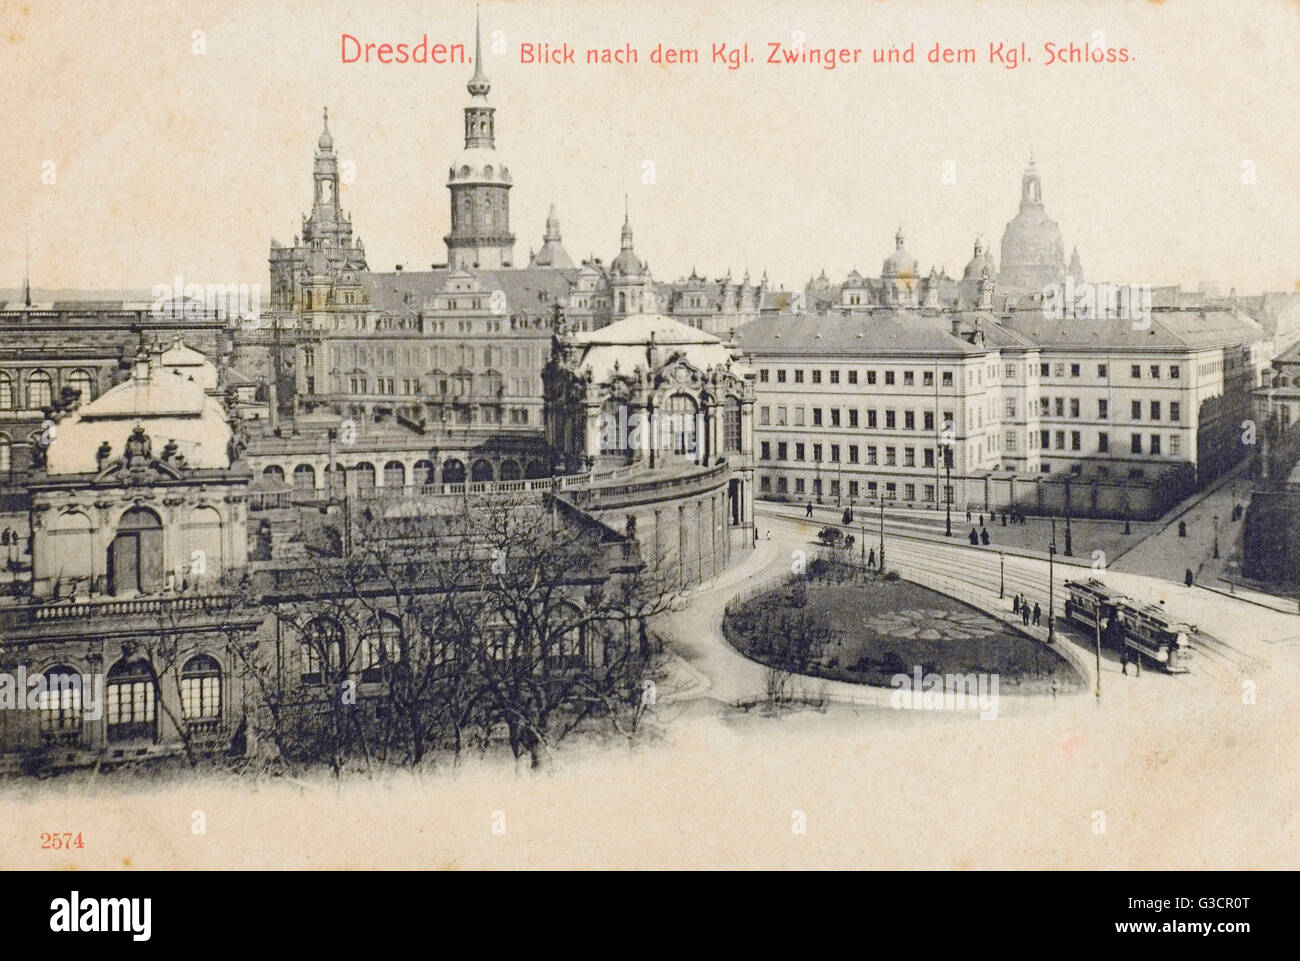 Dresden, Germany - The Zwinger (Dresdner Zwinger) Palace, built in Rococo style and designed by court architect Stock Photo